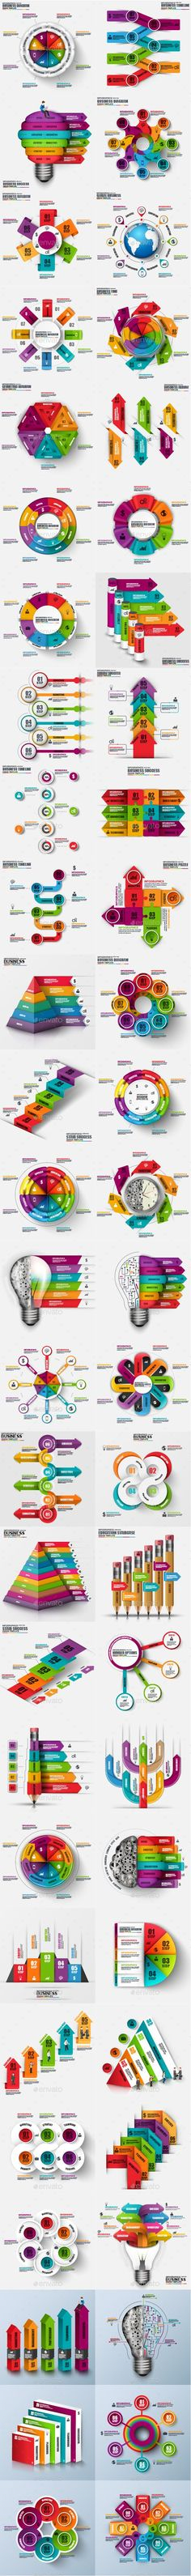 Big Bundle Infographic Templates Vector EPS, AI Illustrator